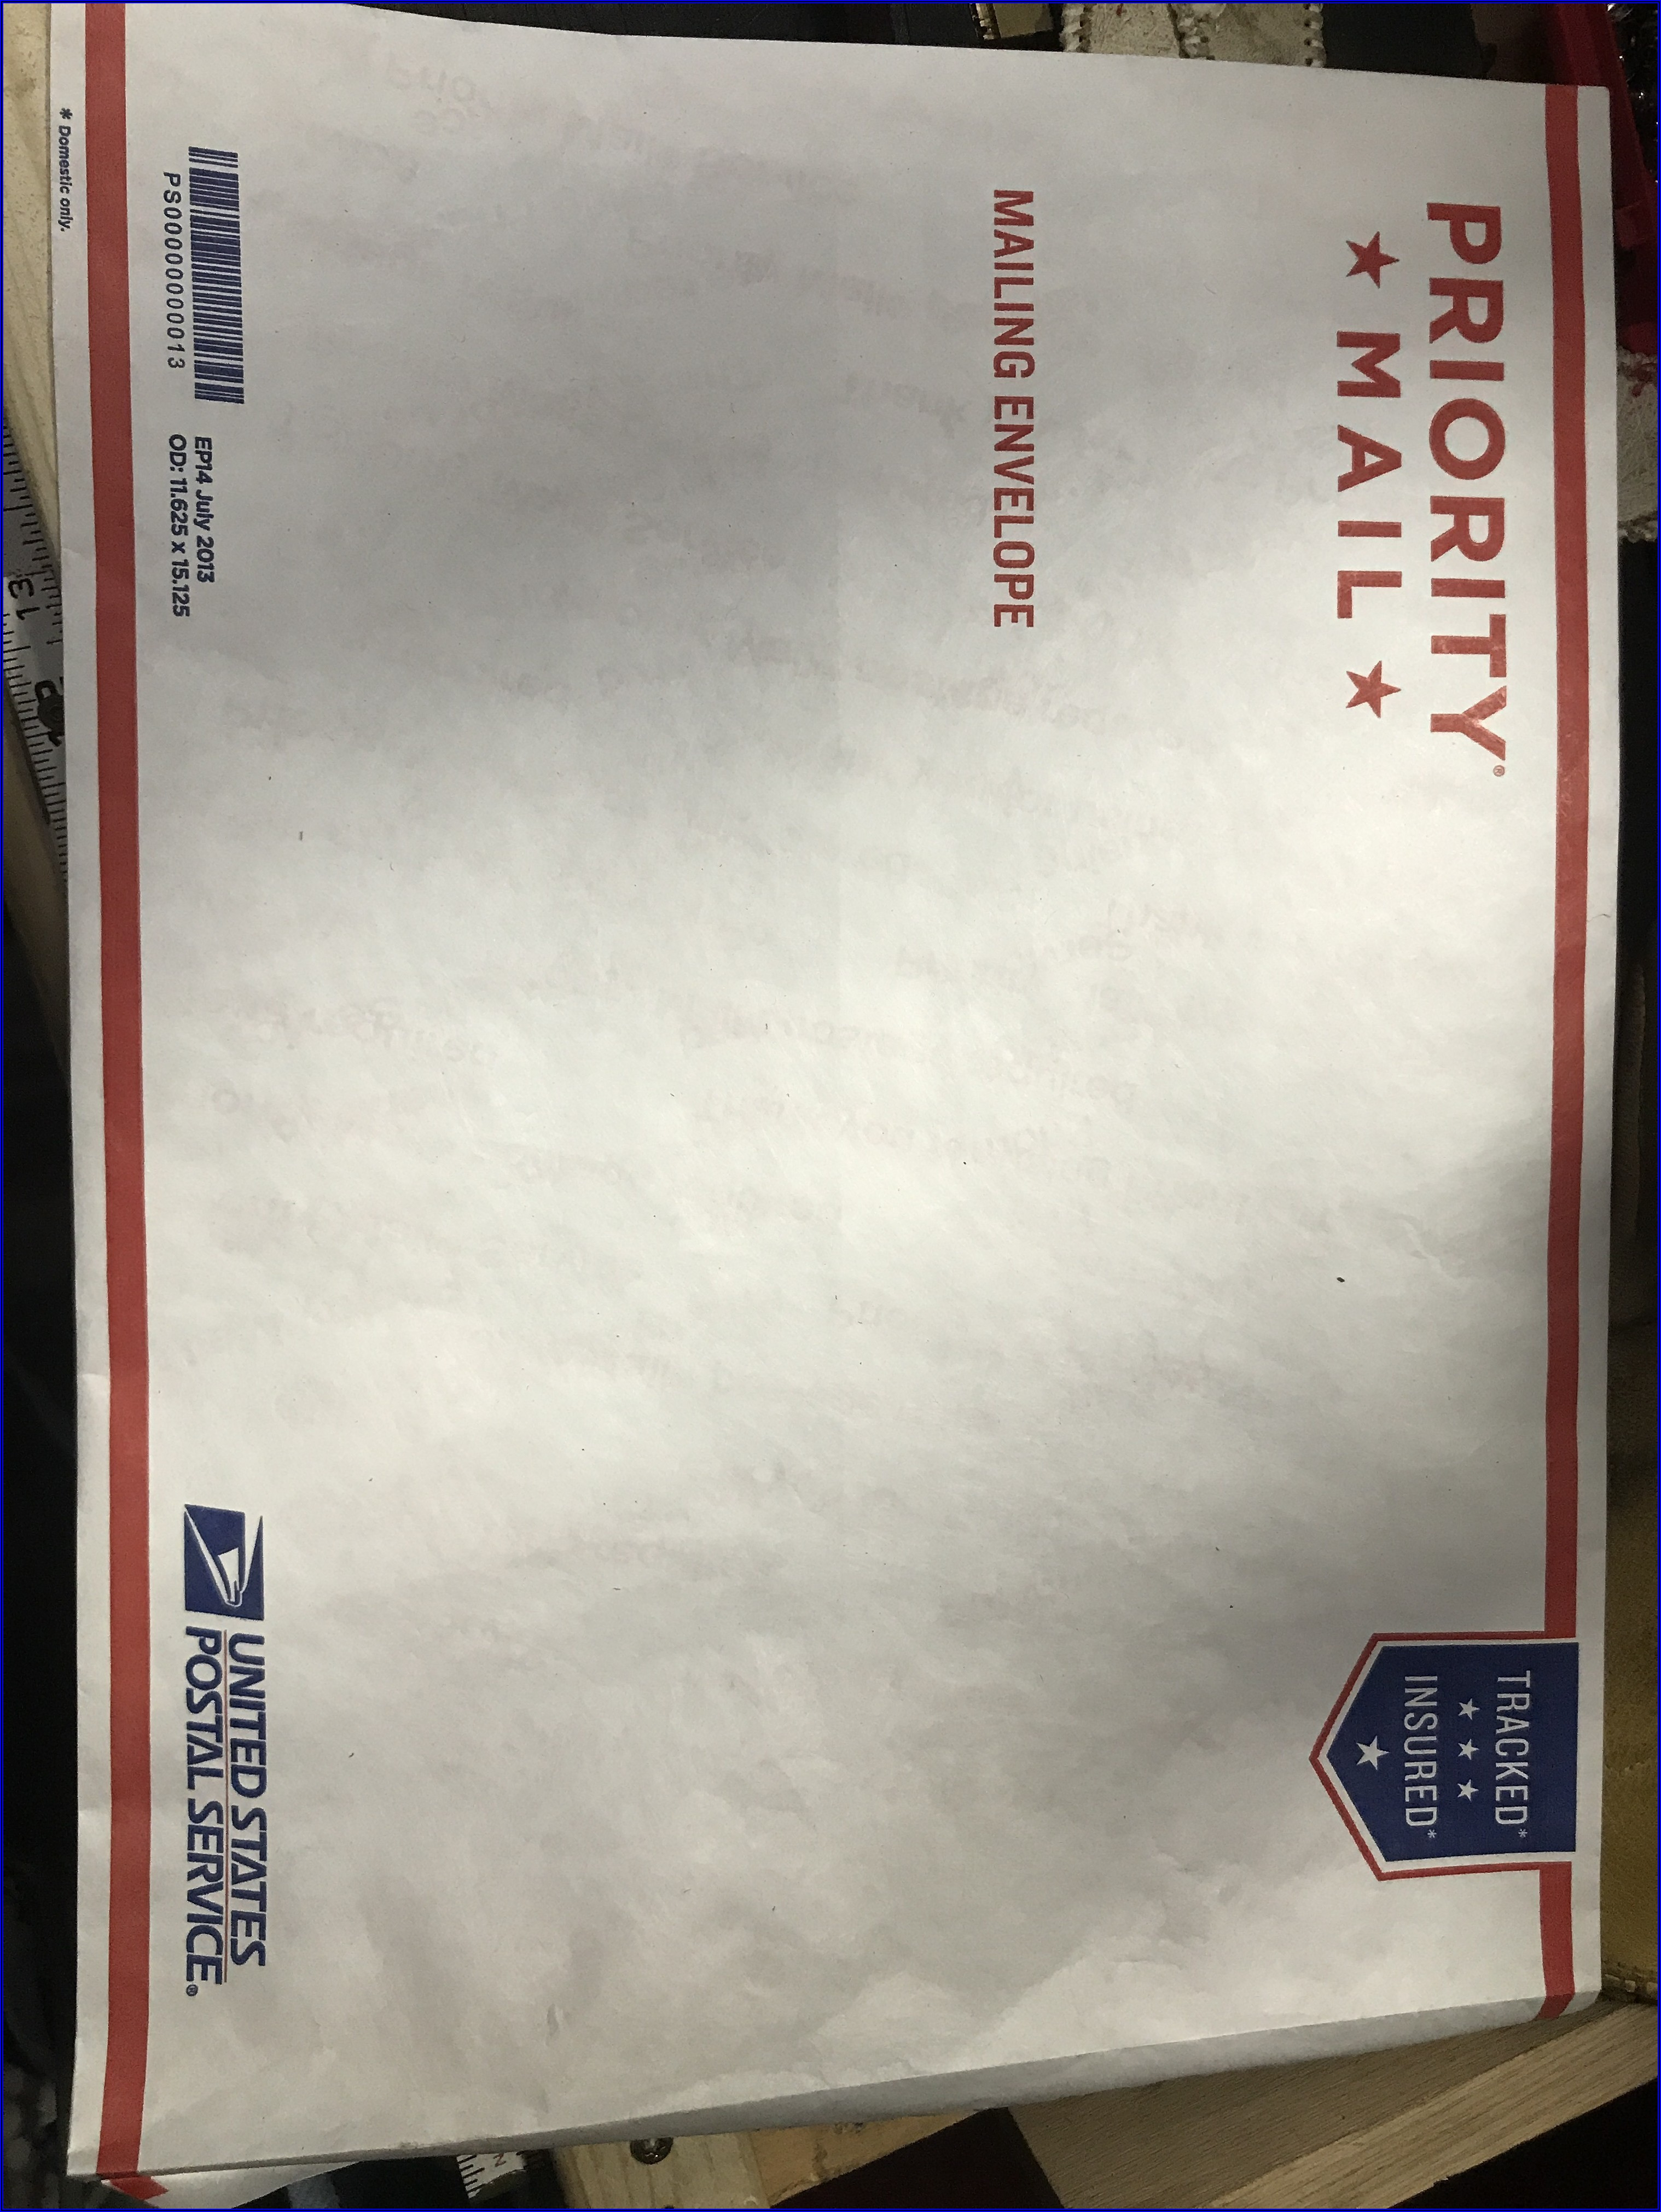 Postage For Legal Size Flat Rate Envelope